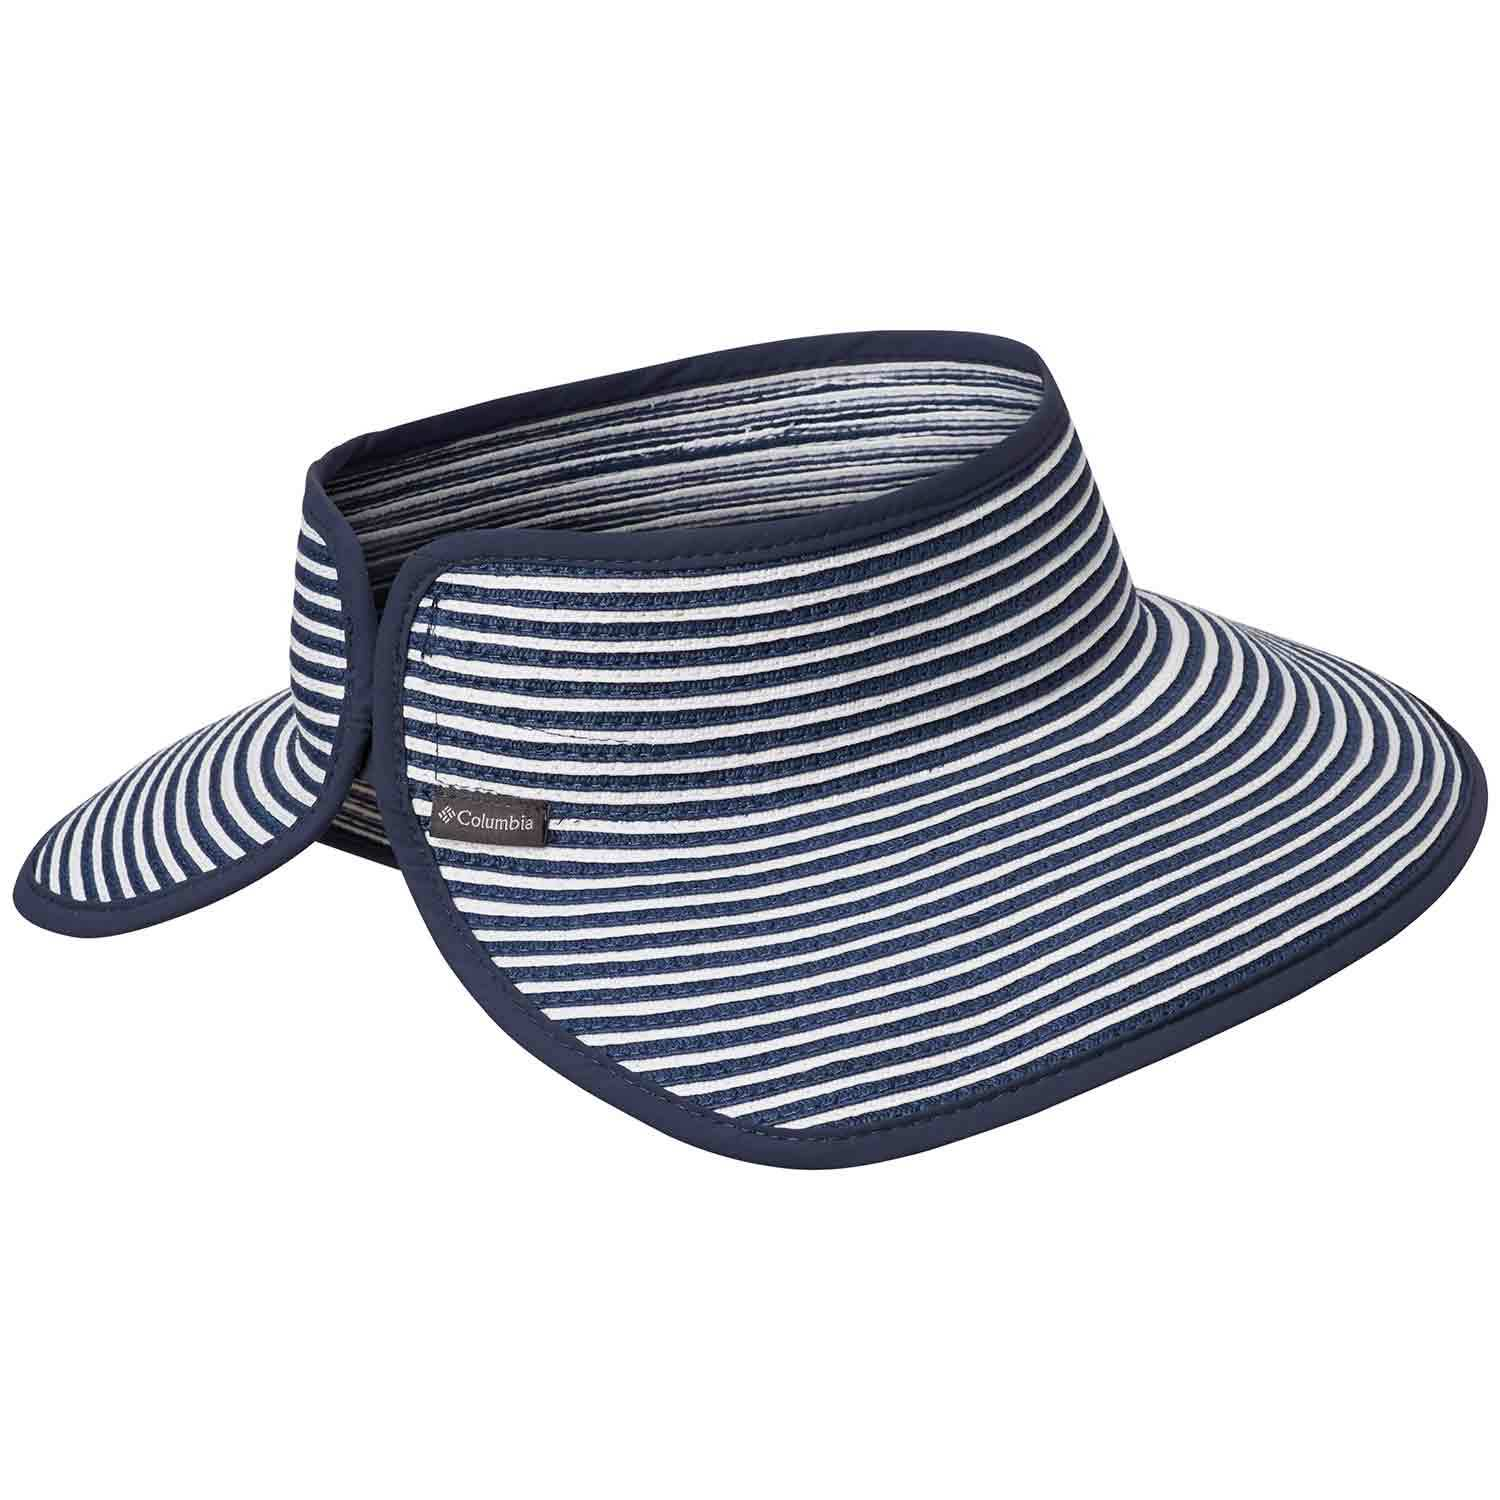 831d8ffb054 New Women s Global Adventure™ Packable Visor Enlarged view of picture